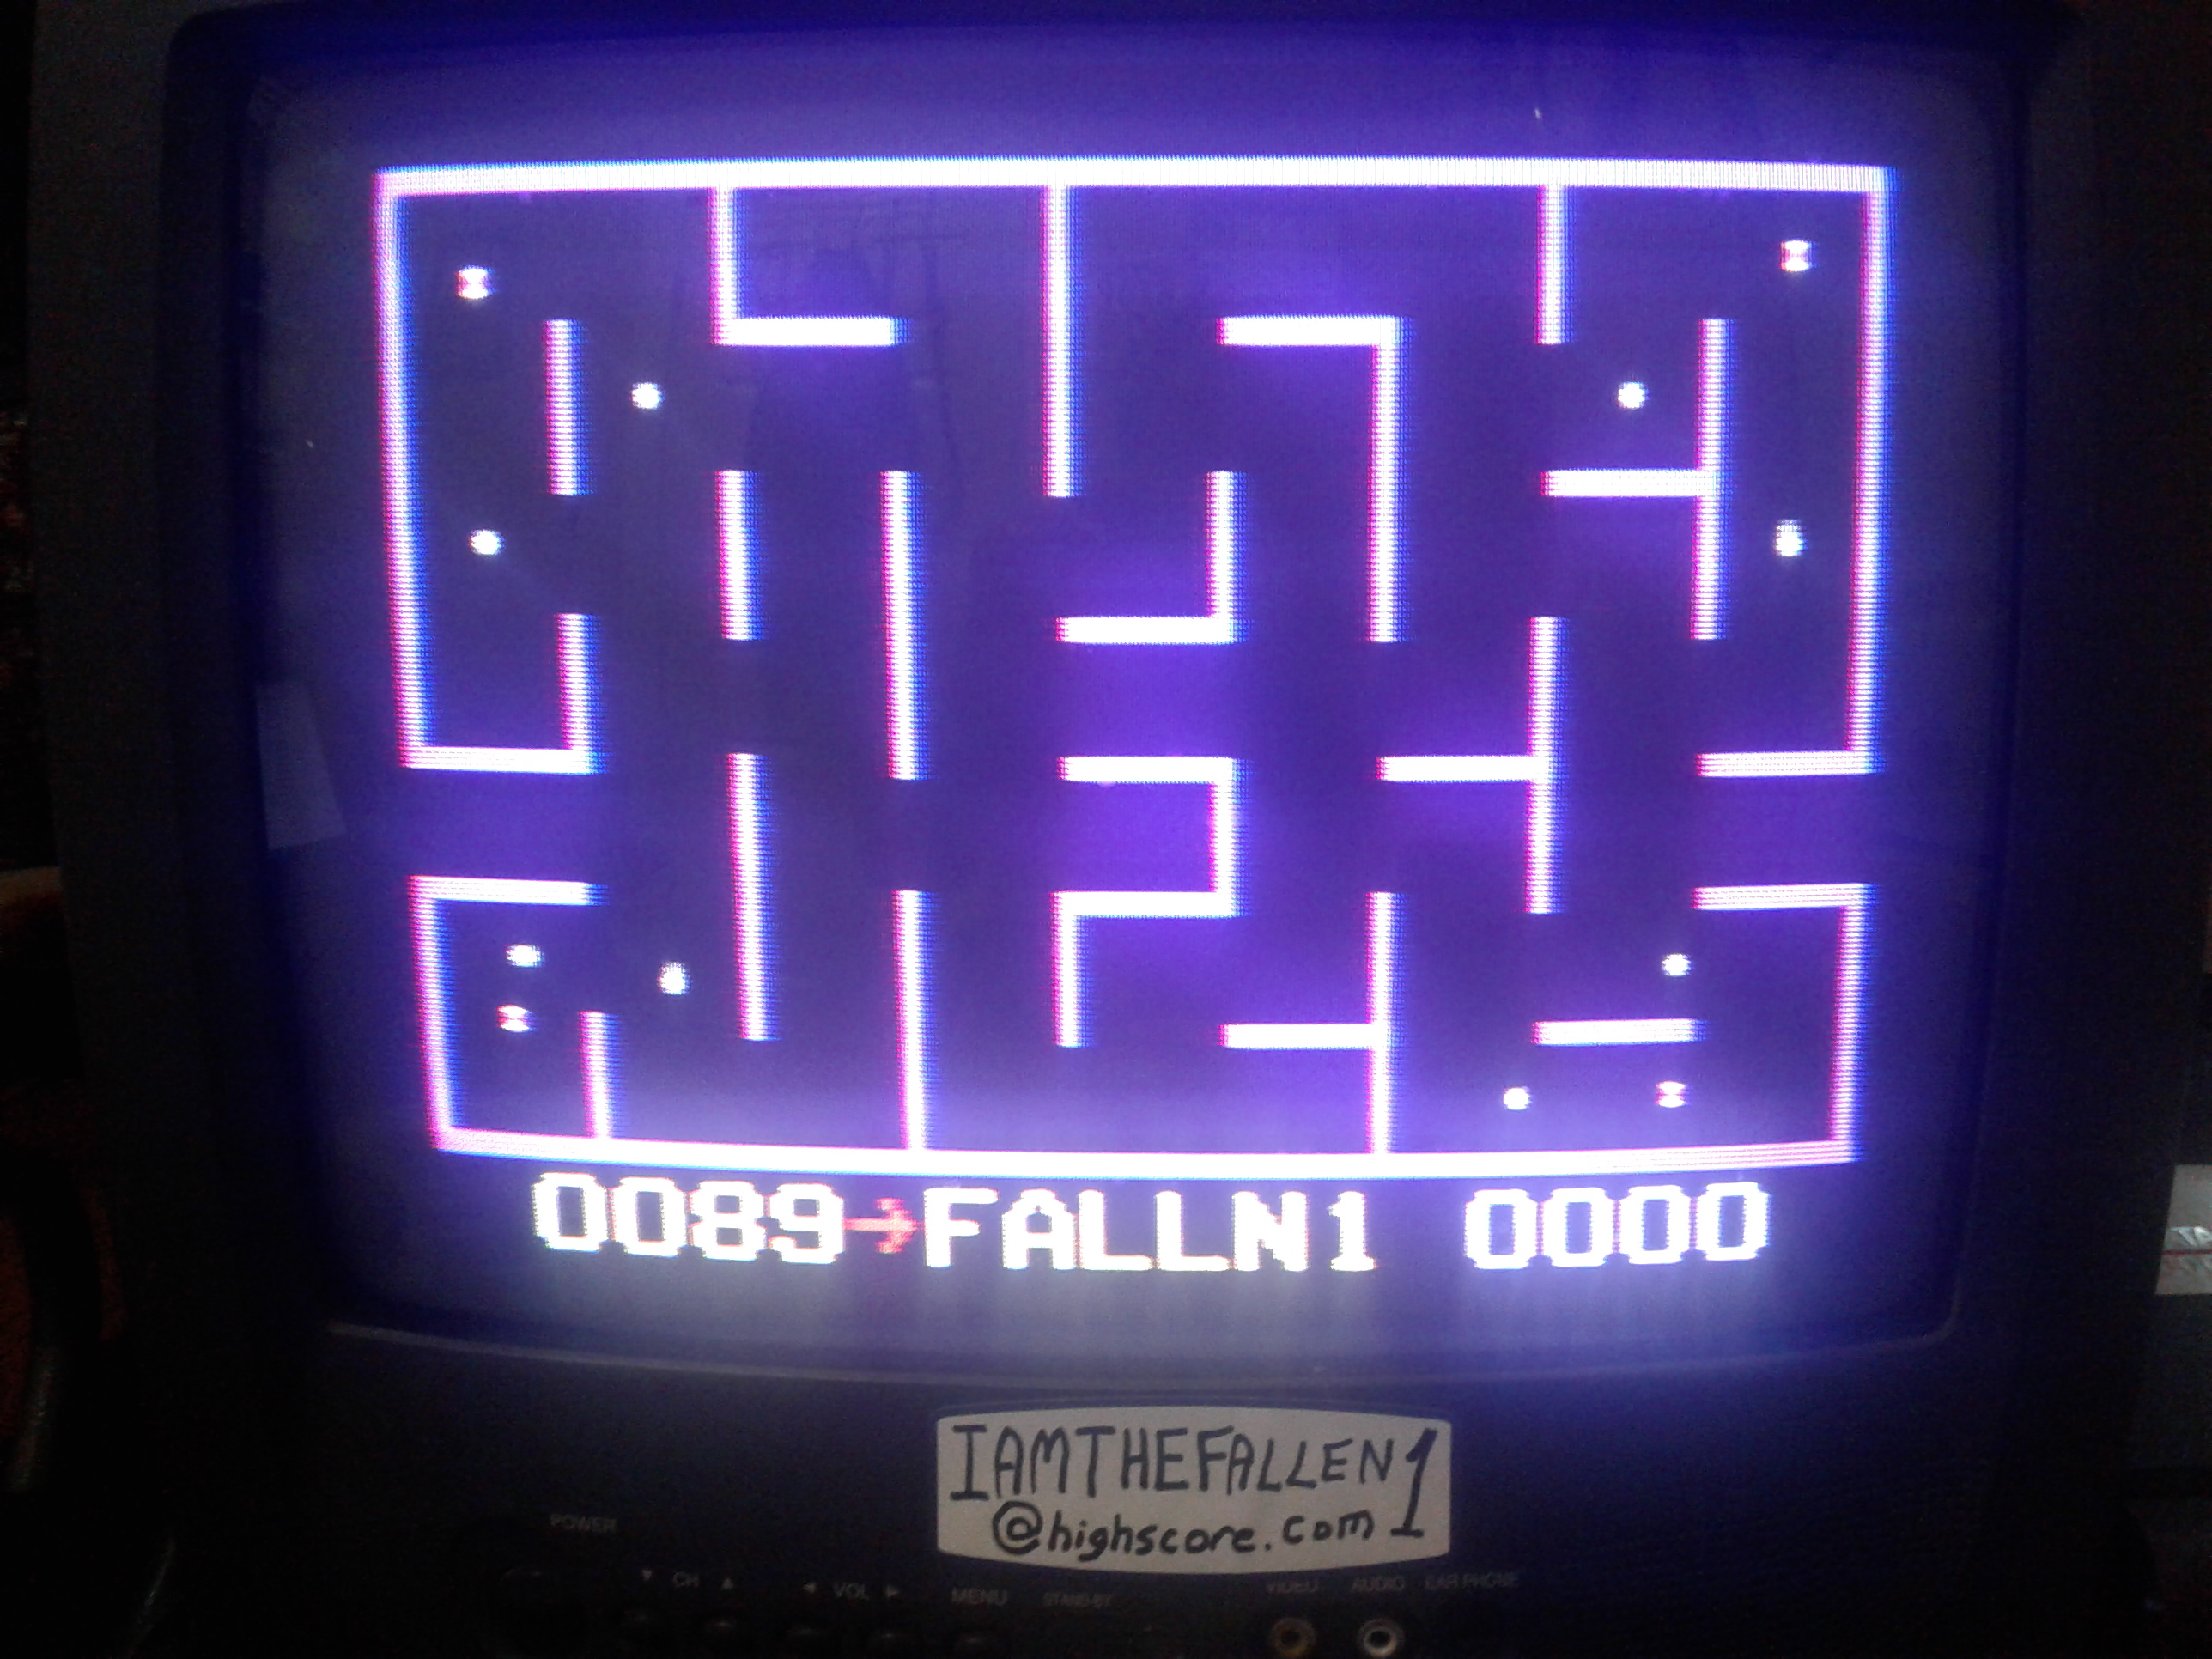 iamthefallen1: K.C. Munchkin: Maze 2 (Atari 7800) 89 points on 2017-11-15 00:02:43